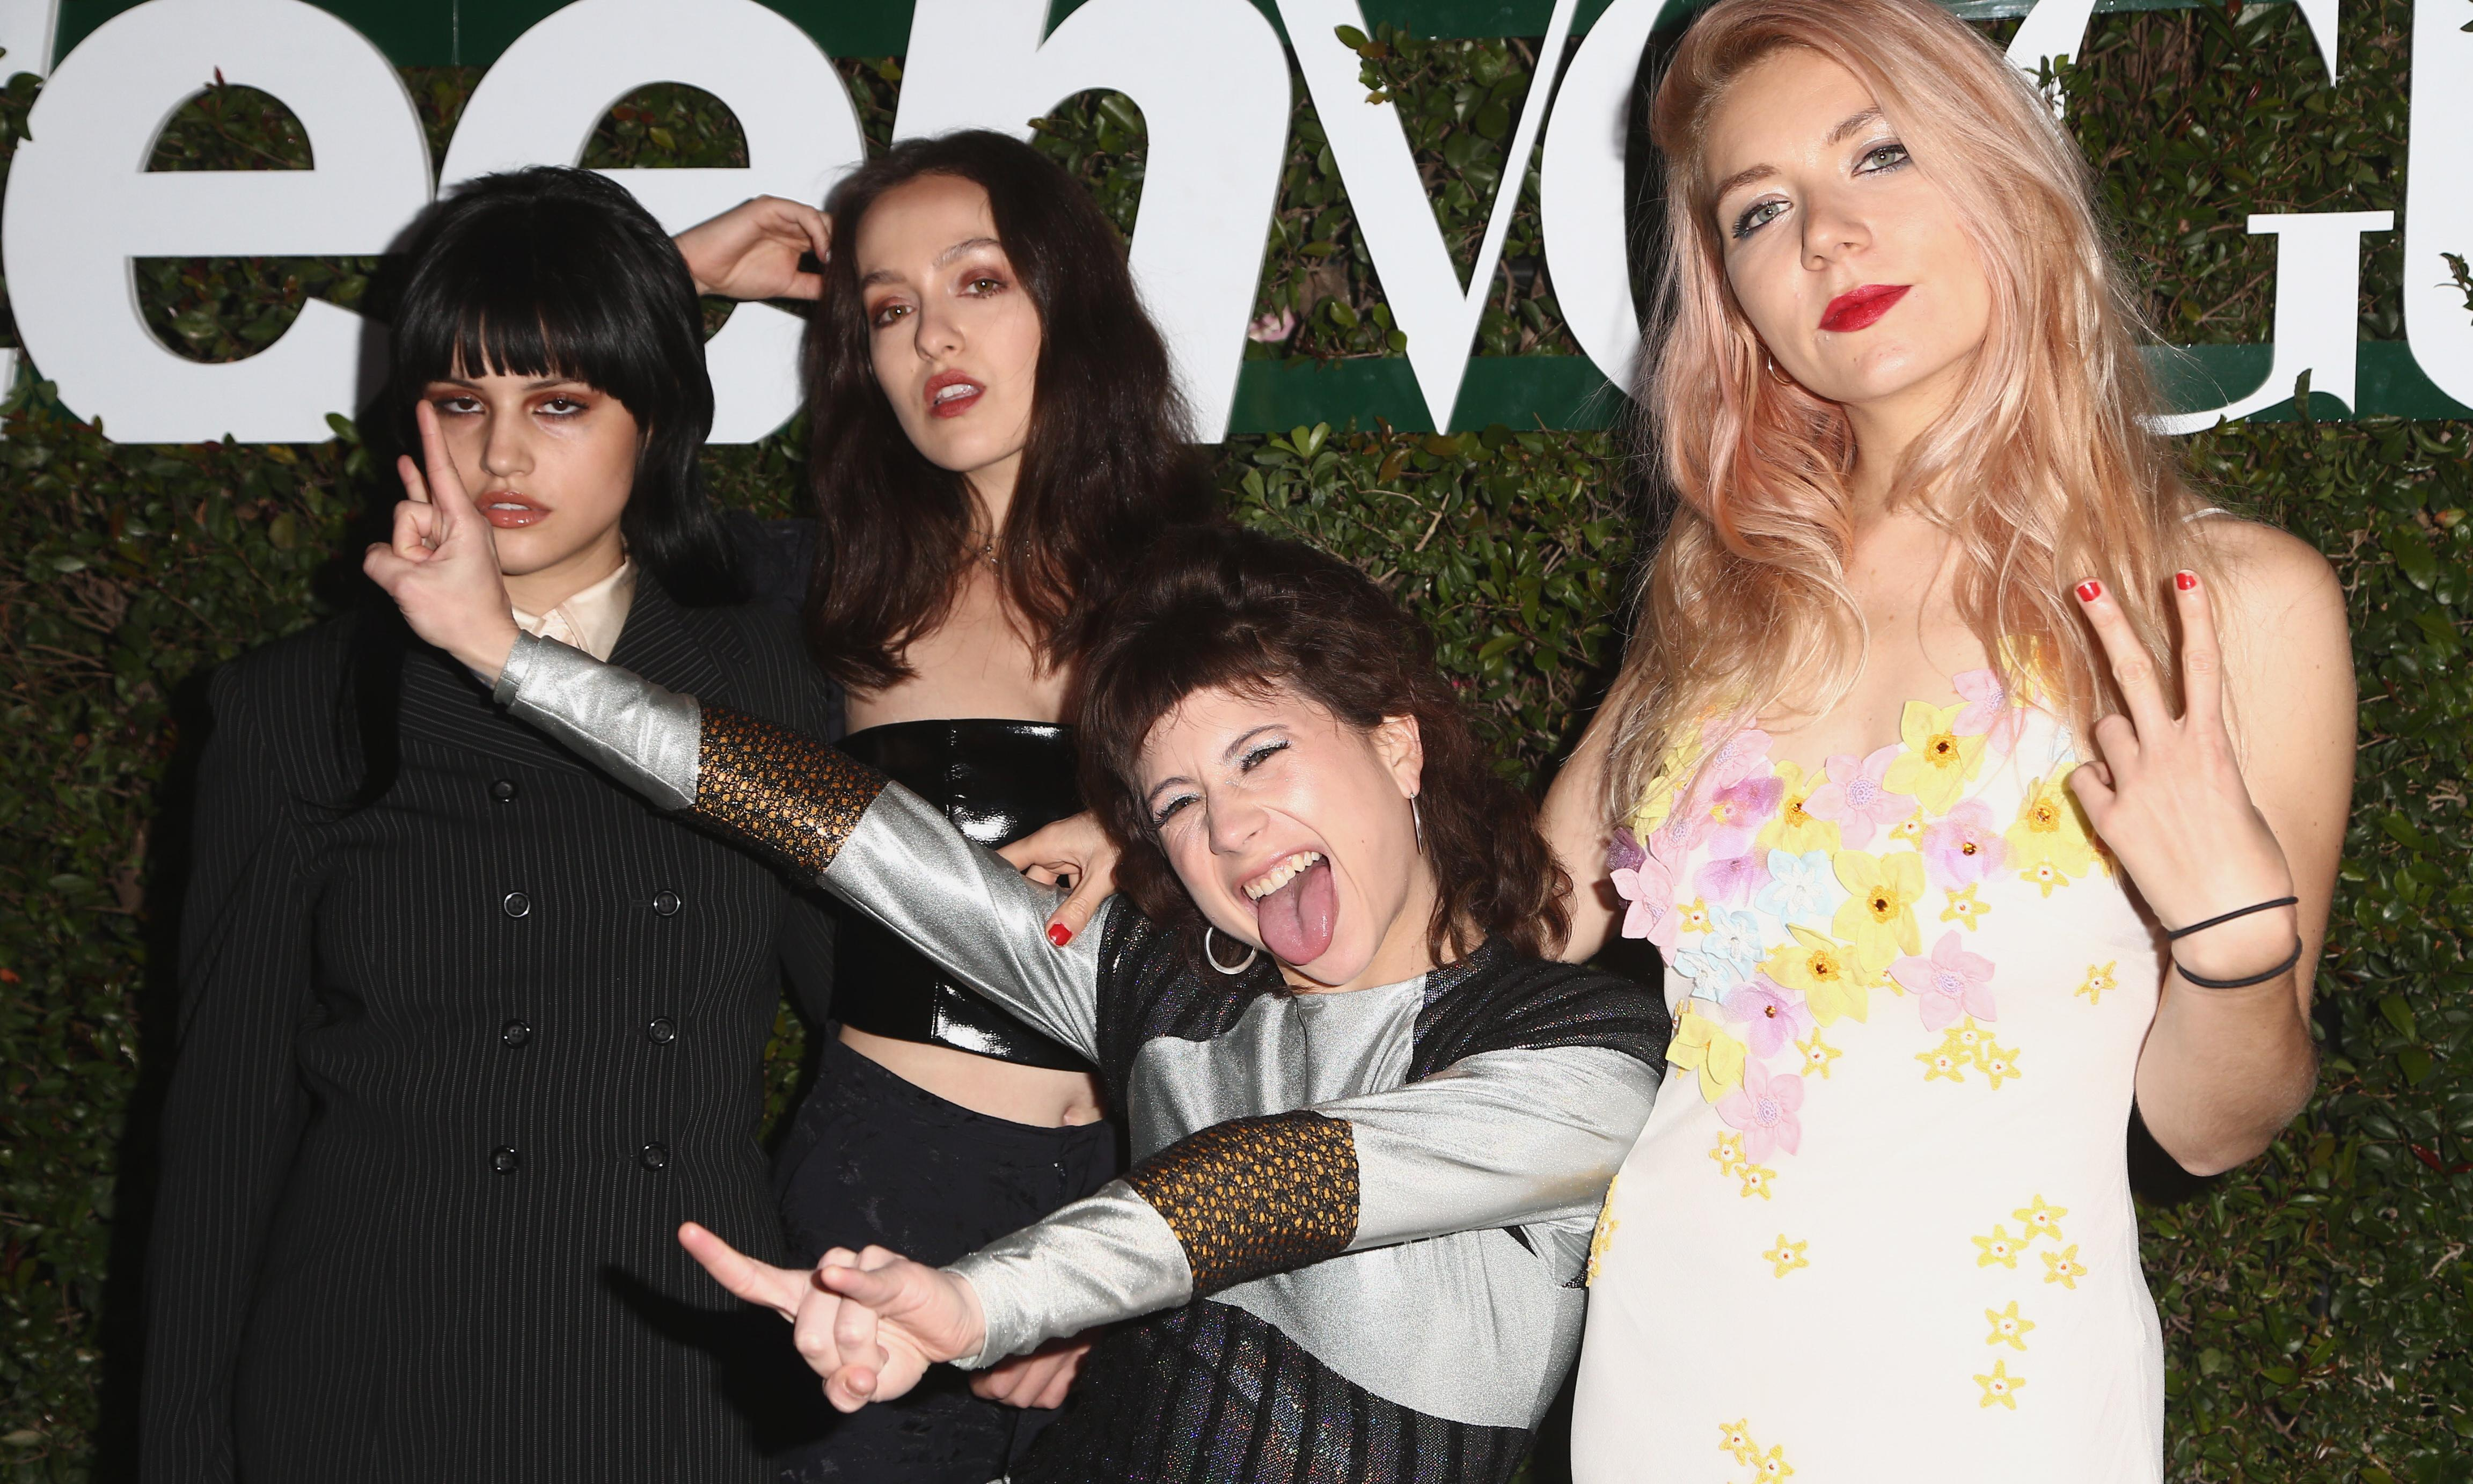 I'm With the Band: Nasty Cherry review – move over Simon Cowell, here's Charli XCX!